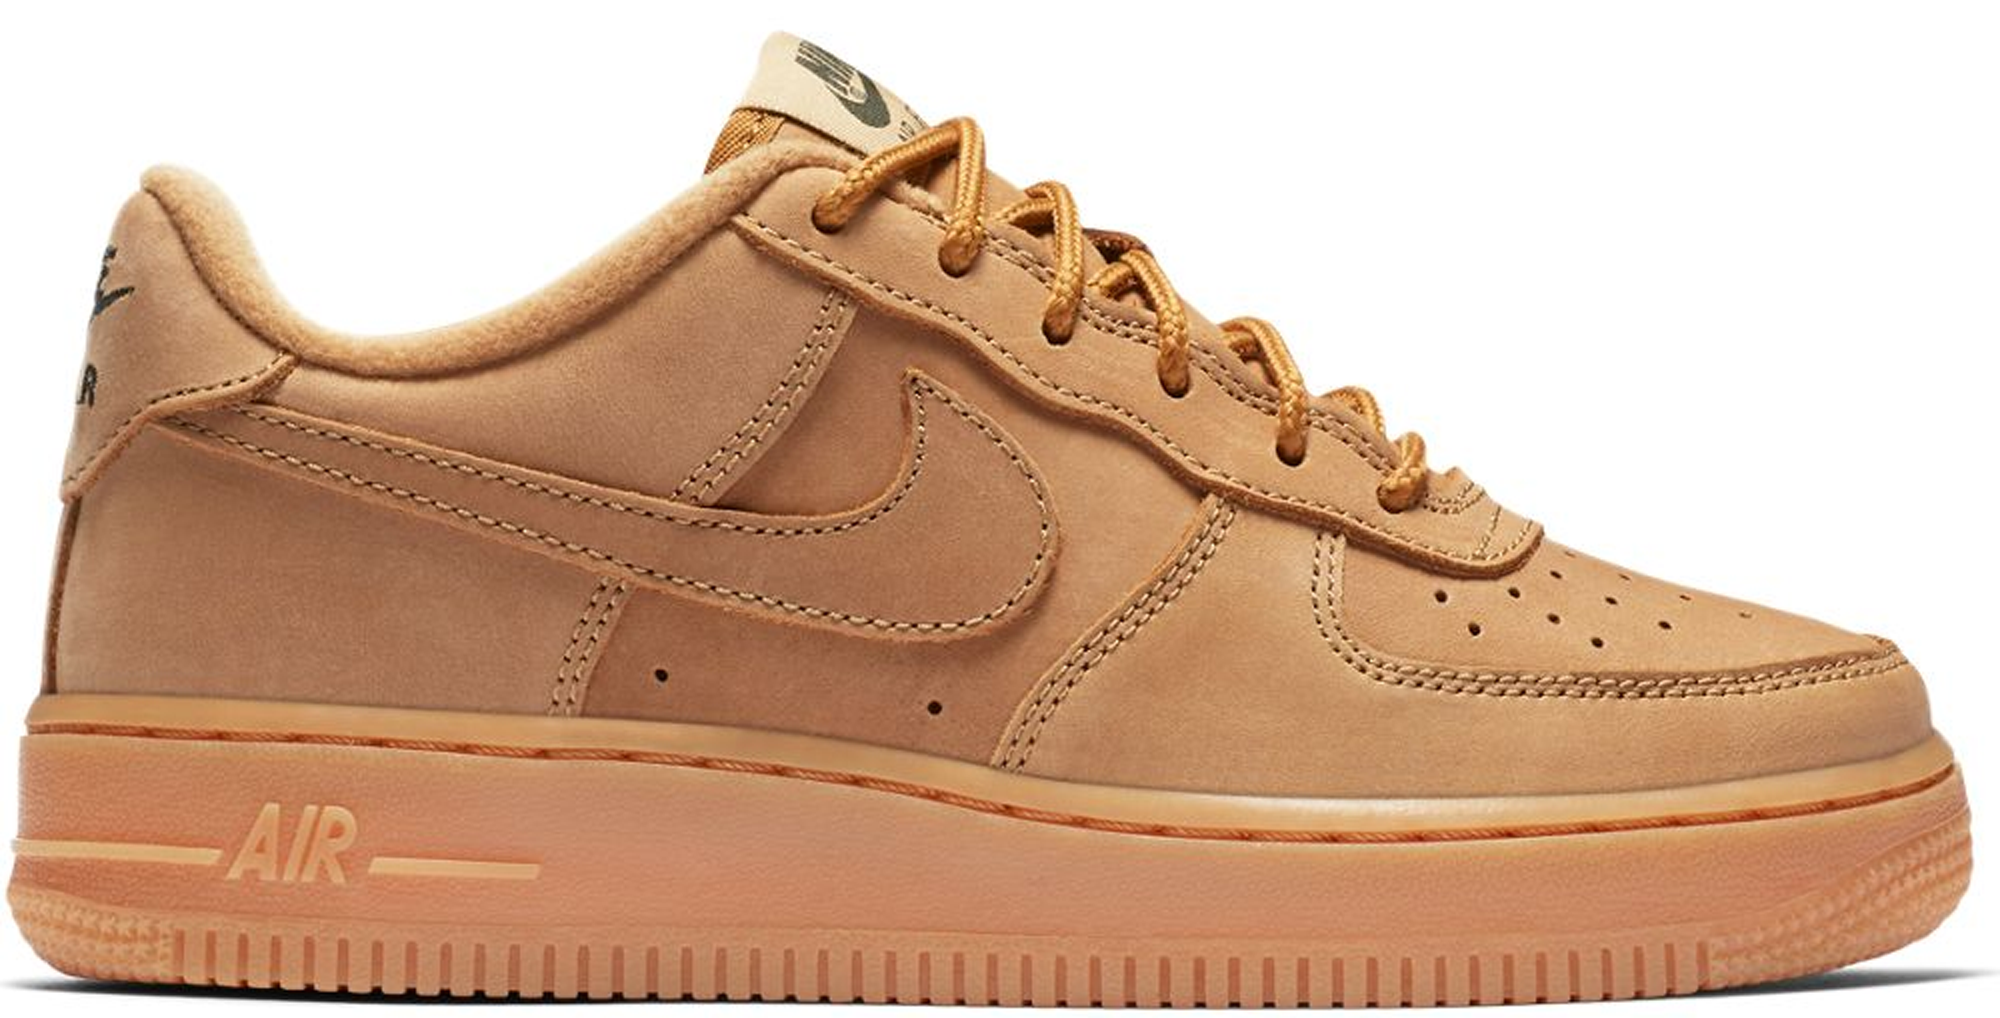 Nike Air Force 1 Low Winter Flax (GS